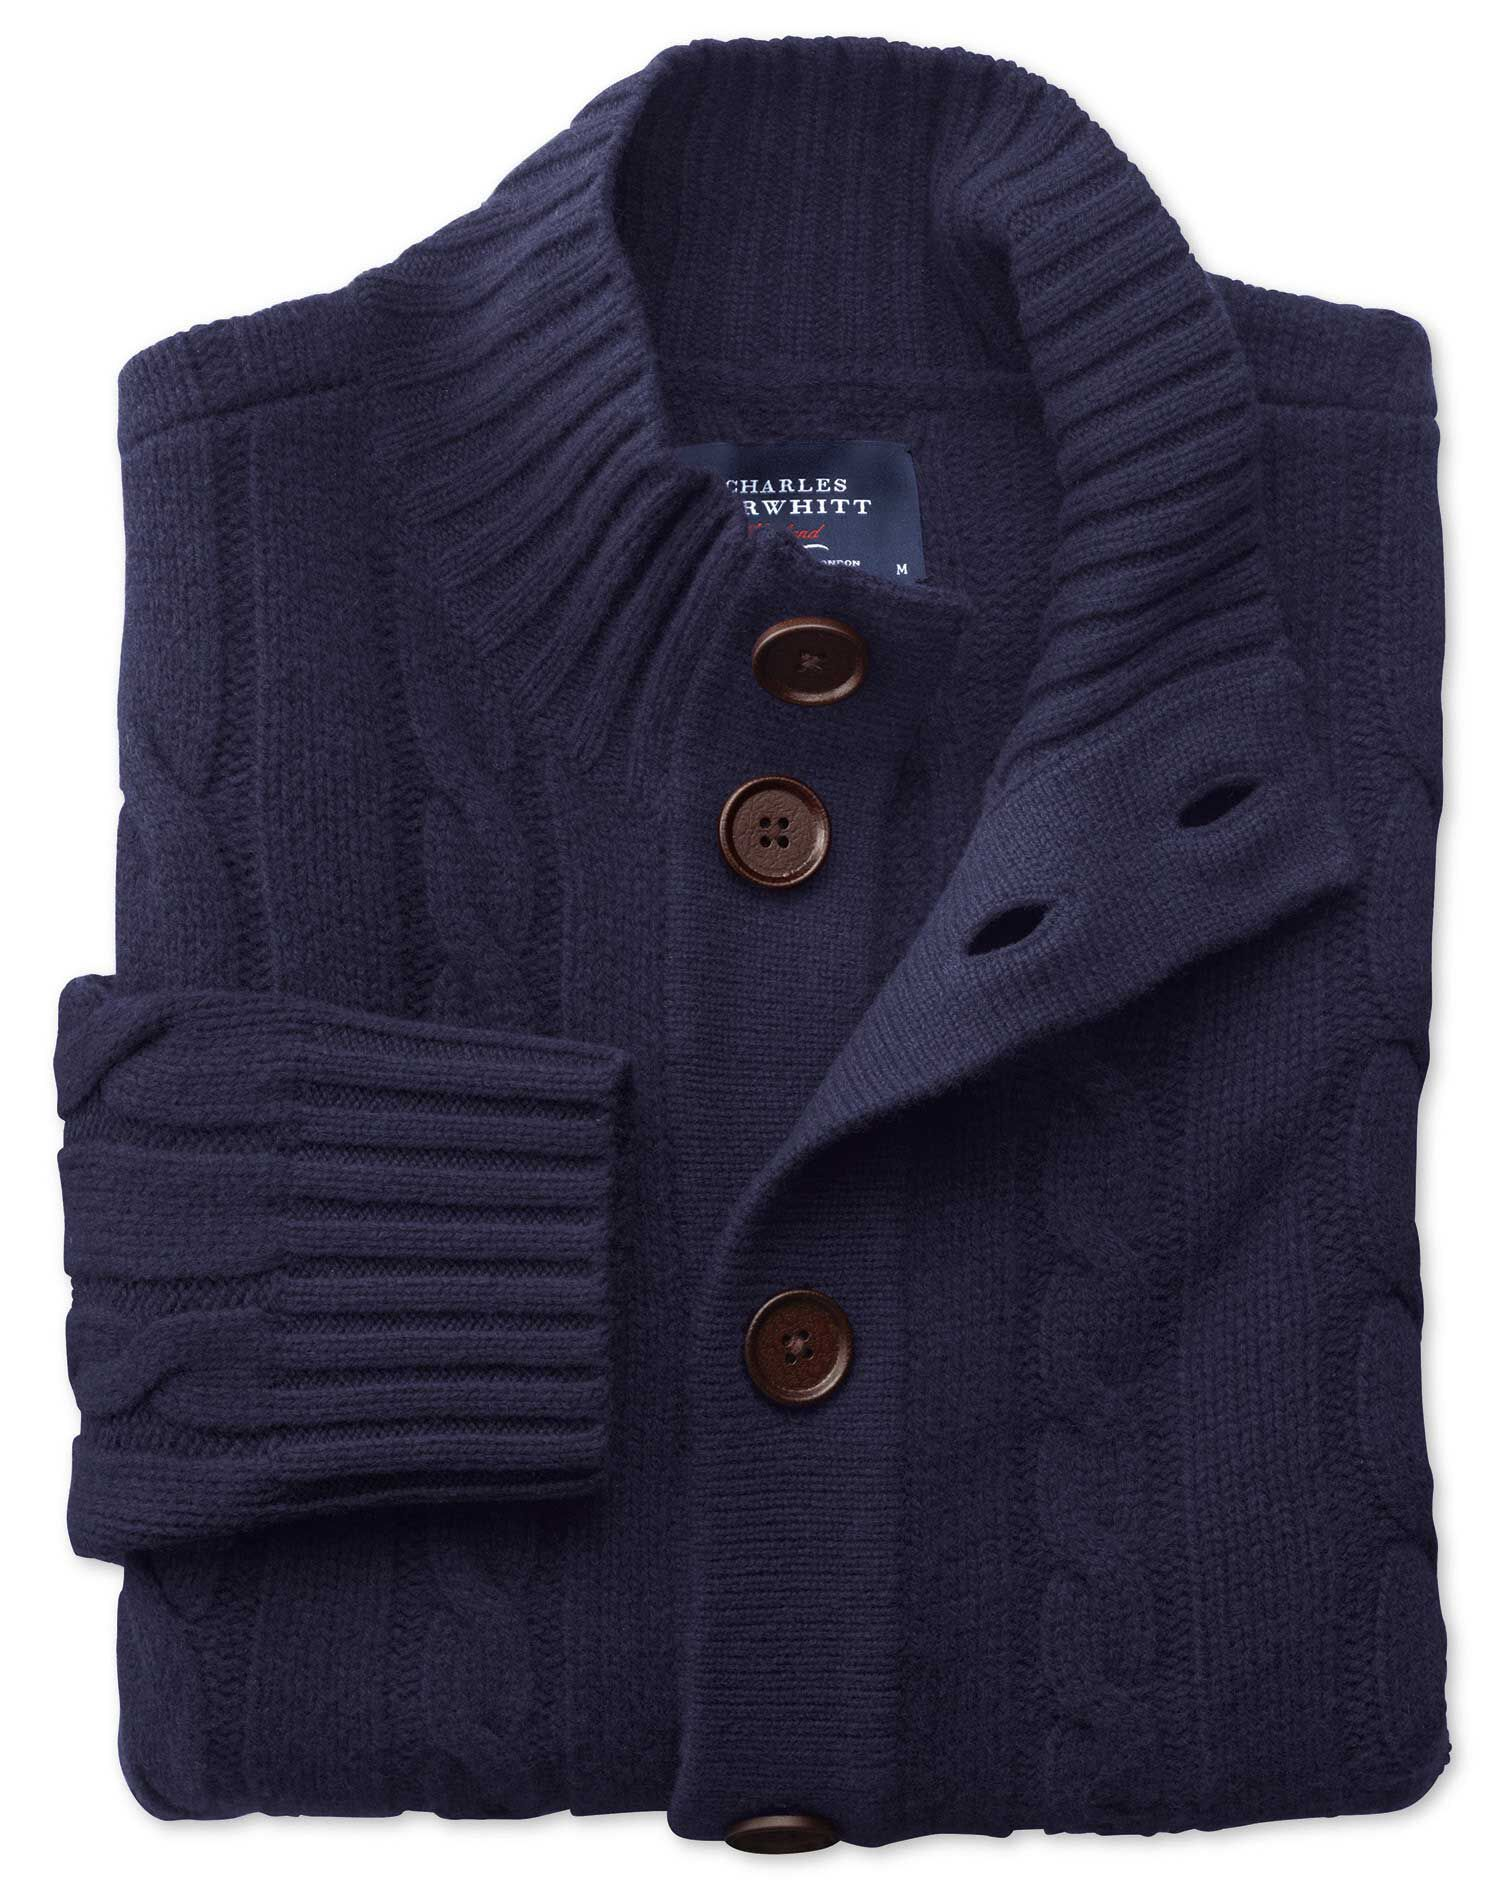 Navy Lambswool Cable Cardigan Size Small by Charles Tyrwhitt